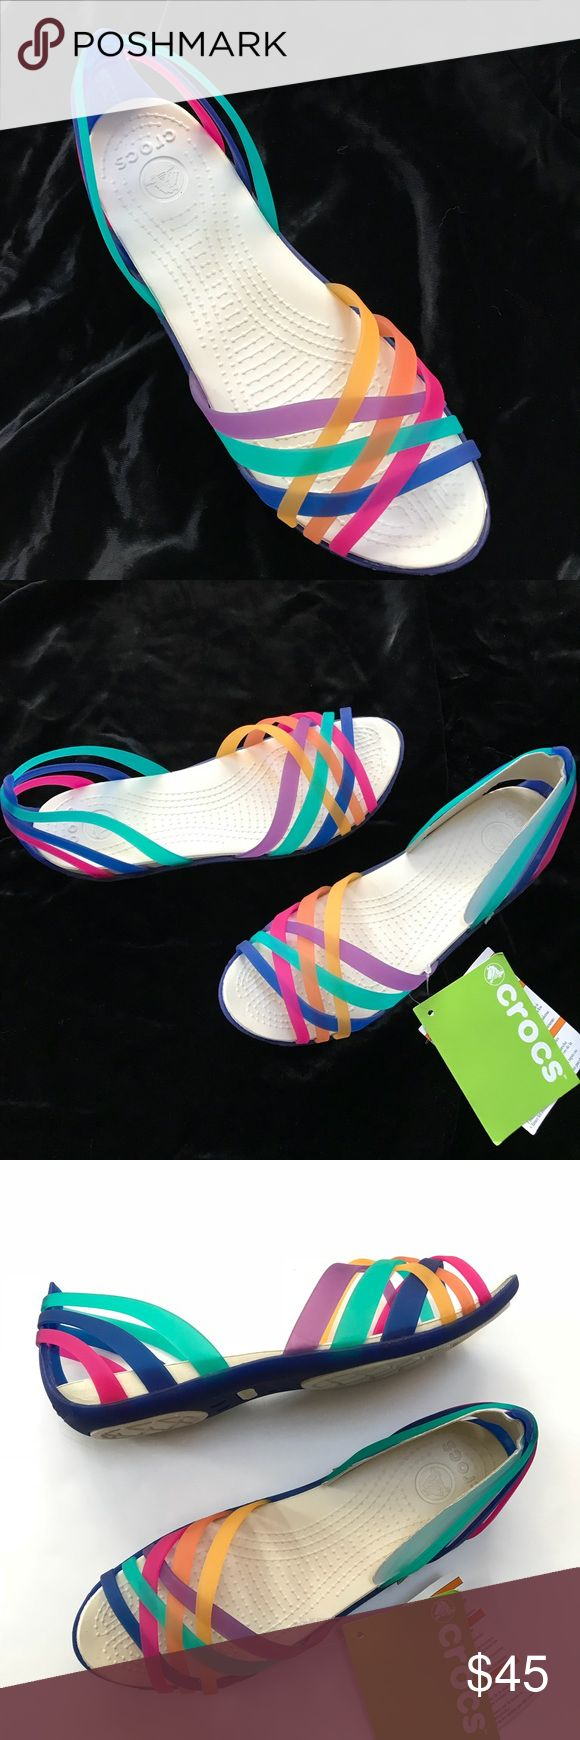 Crocs Rainbow Huarache Flat Sandals Shoes.  Size 7 Crocs Rainbow Sandals Shoes.  Women's Size: 7.  Style Huarache Flat.  Relaxed Fit.  Multi Color / Cerulean Blue.  Slip On.  Rubber / Jelly.  New with Tags- Unworn.  Store Display- May have Minor Markings.  One Shoe is Black Marked on Bottom Outsole. CROCS Shoes Sandals